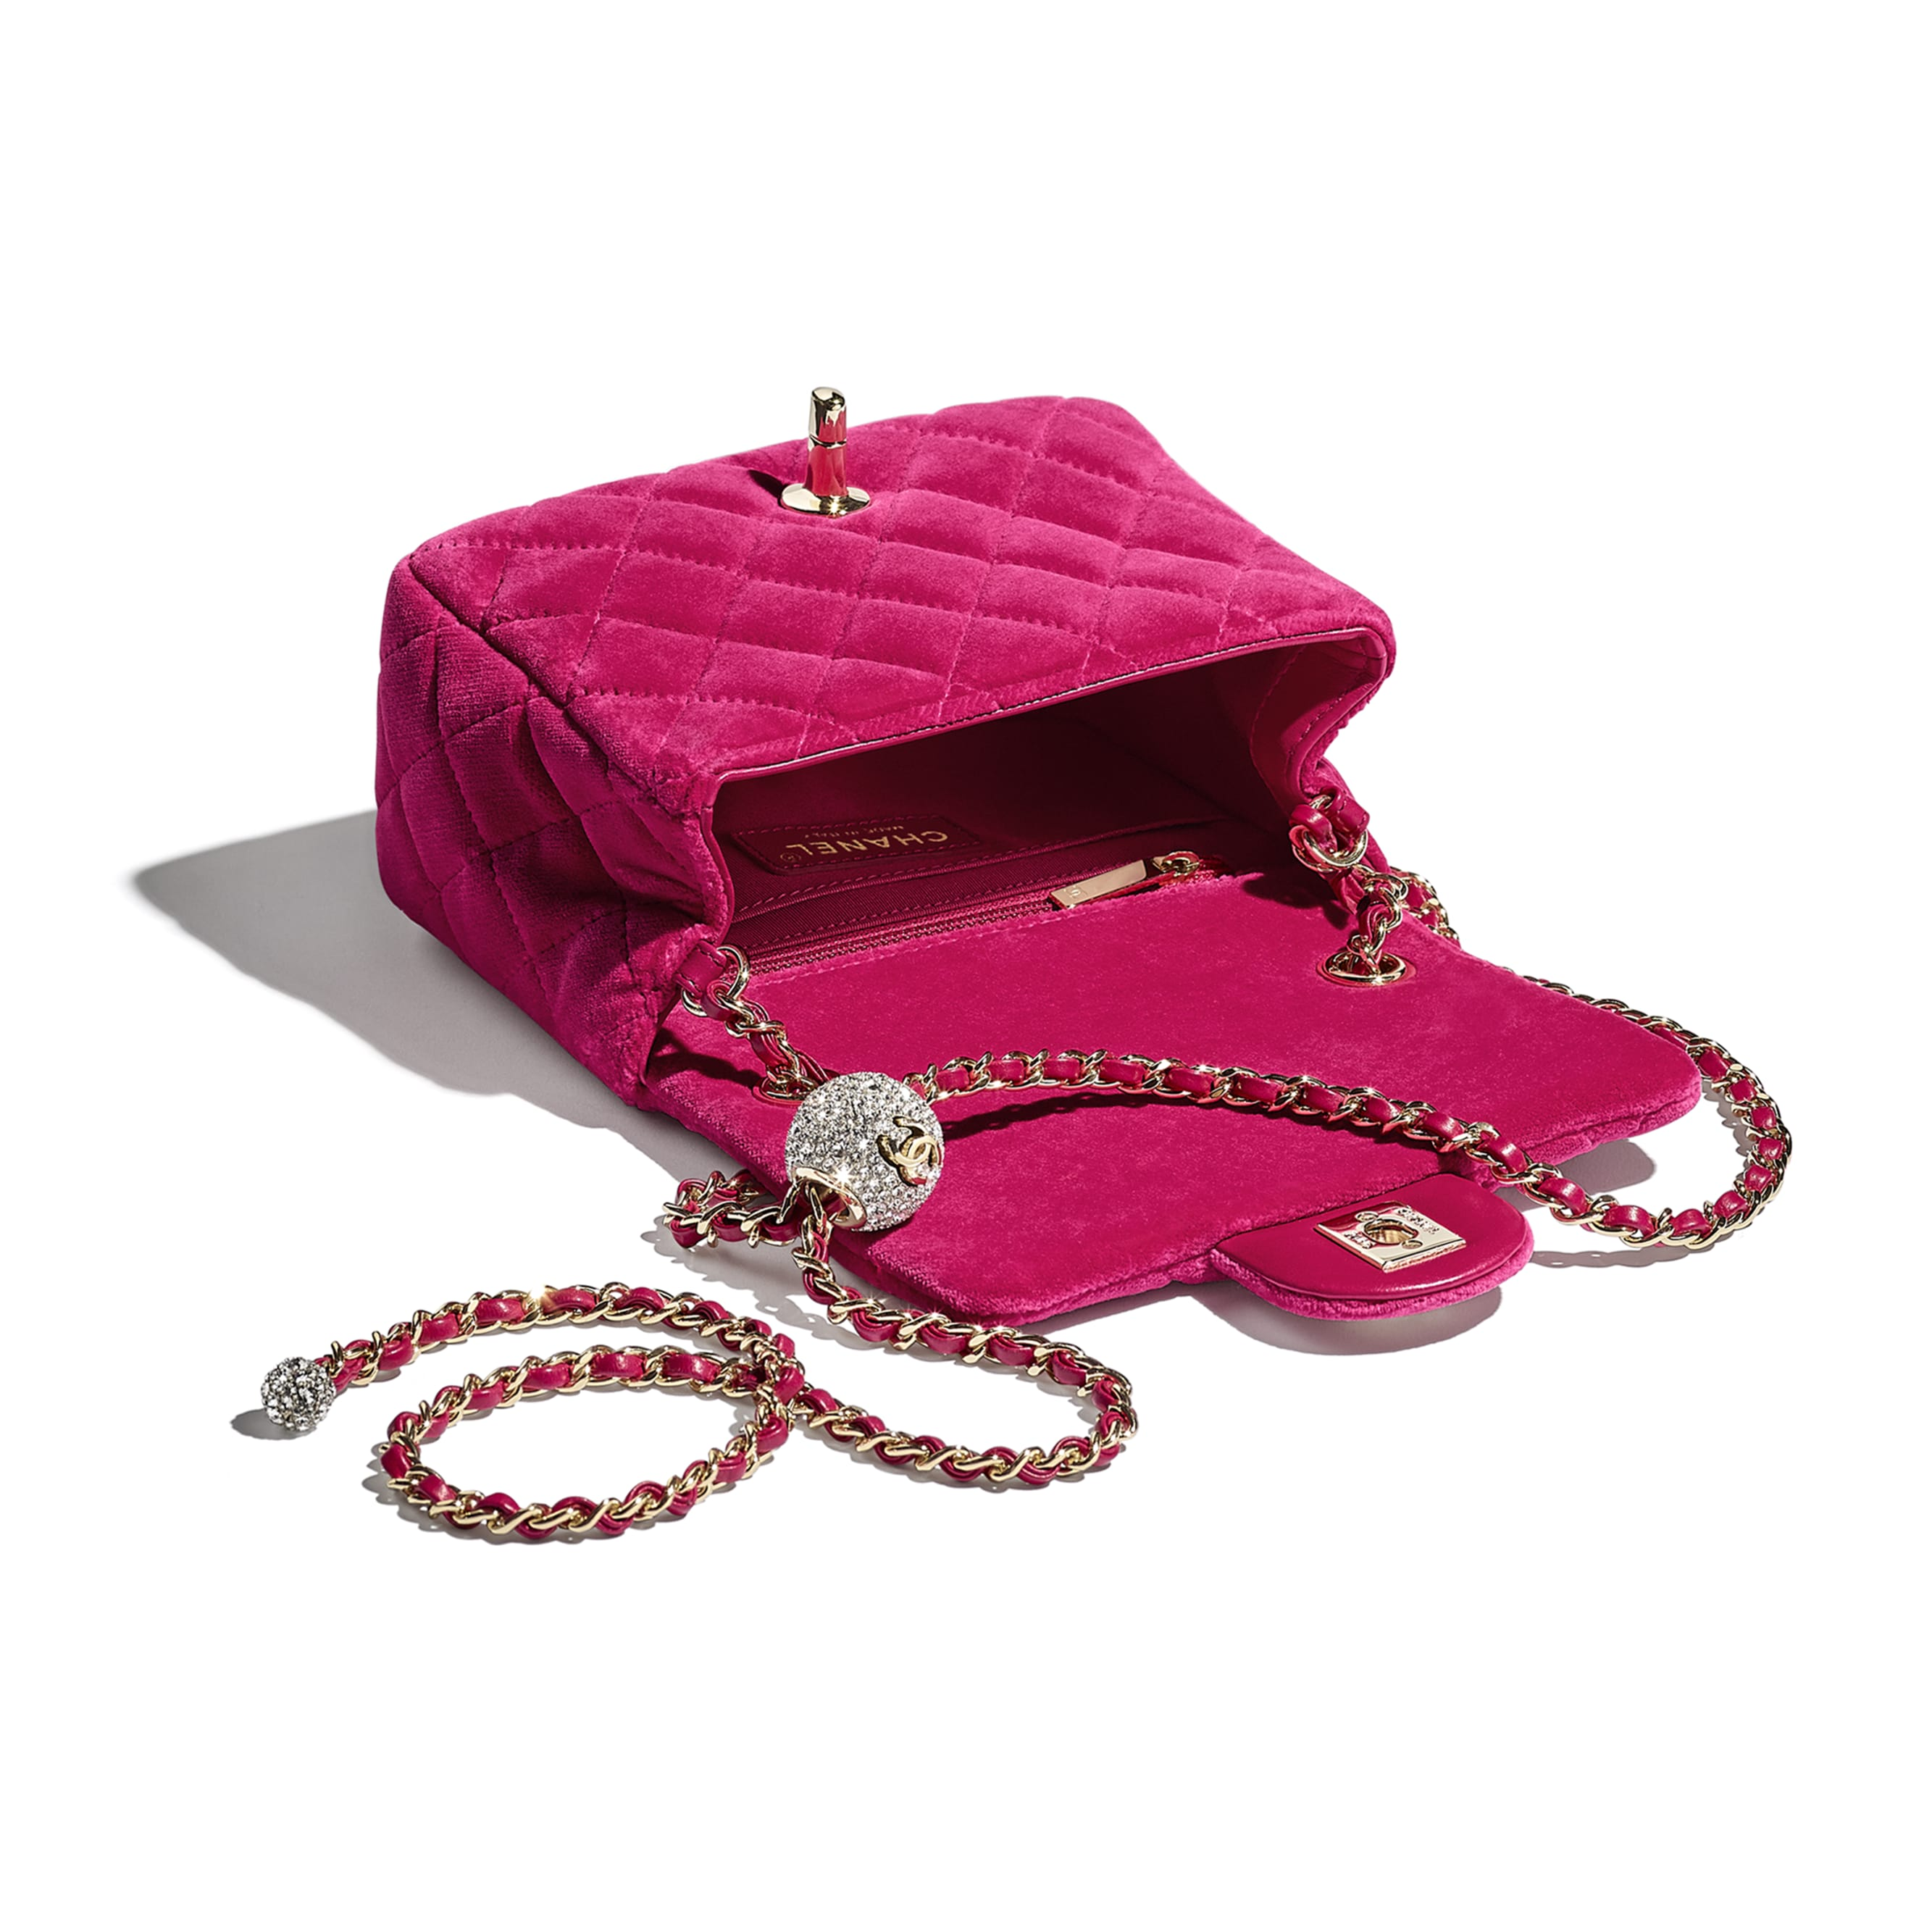 Flap Bag - Fuchsia - Velvet, Diamanté & Gold-Tone Metal - CHANEL - Other view - see standard sized version